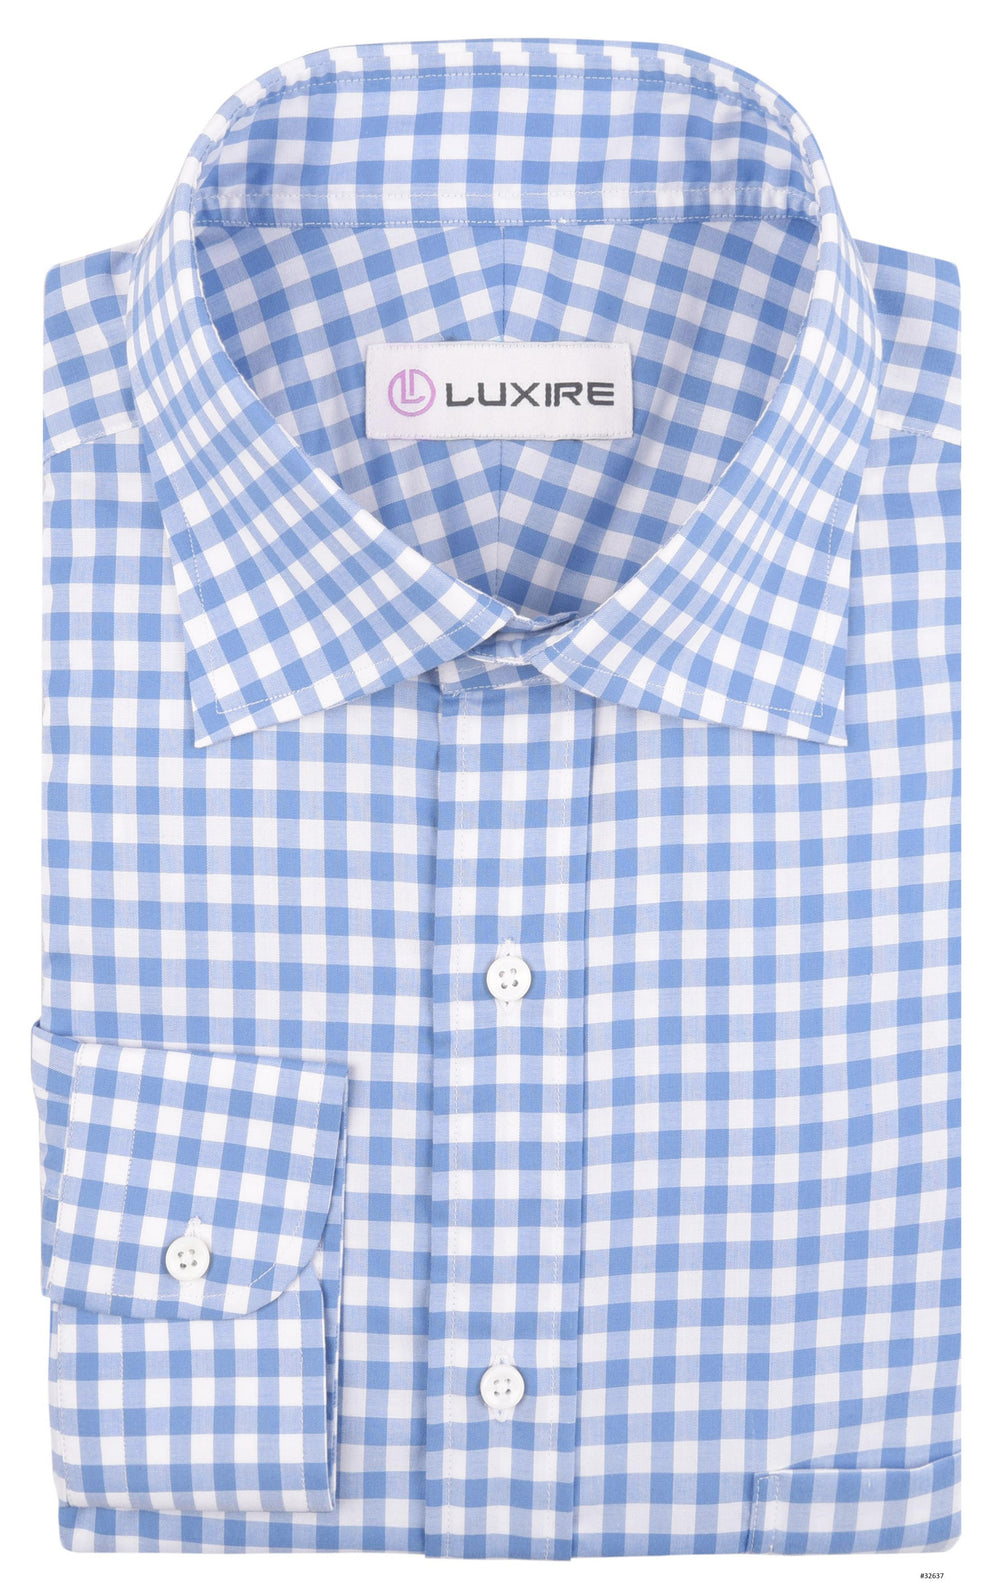 Ultramarine Light Blue Checks on White (363696301)